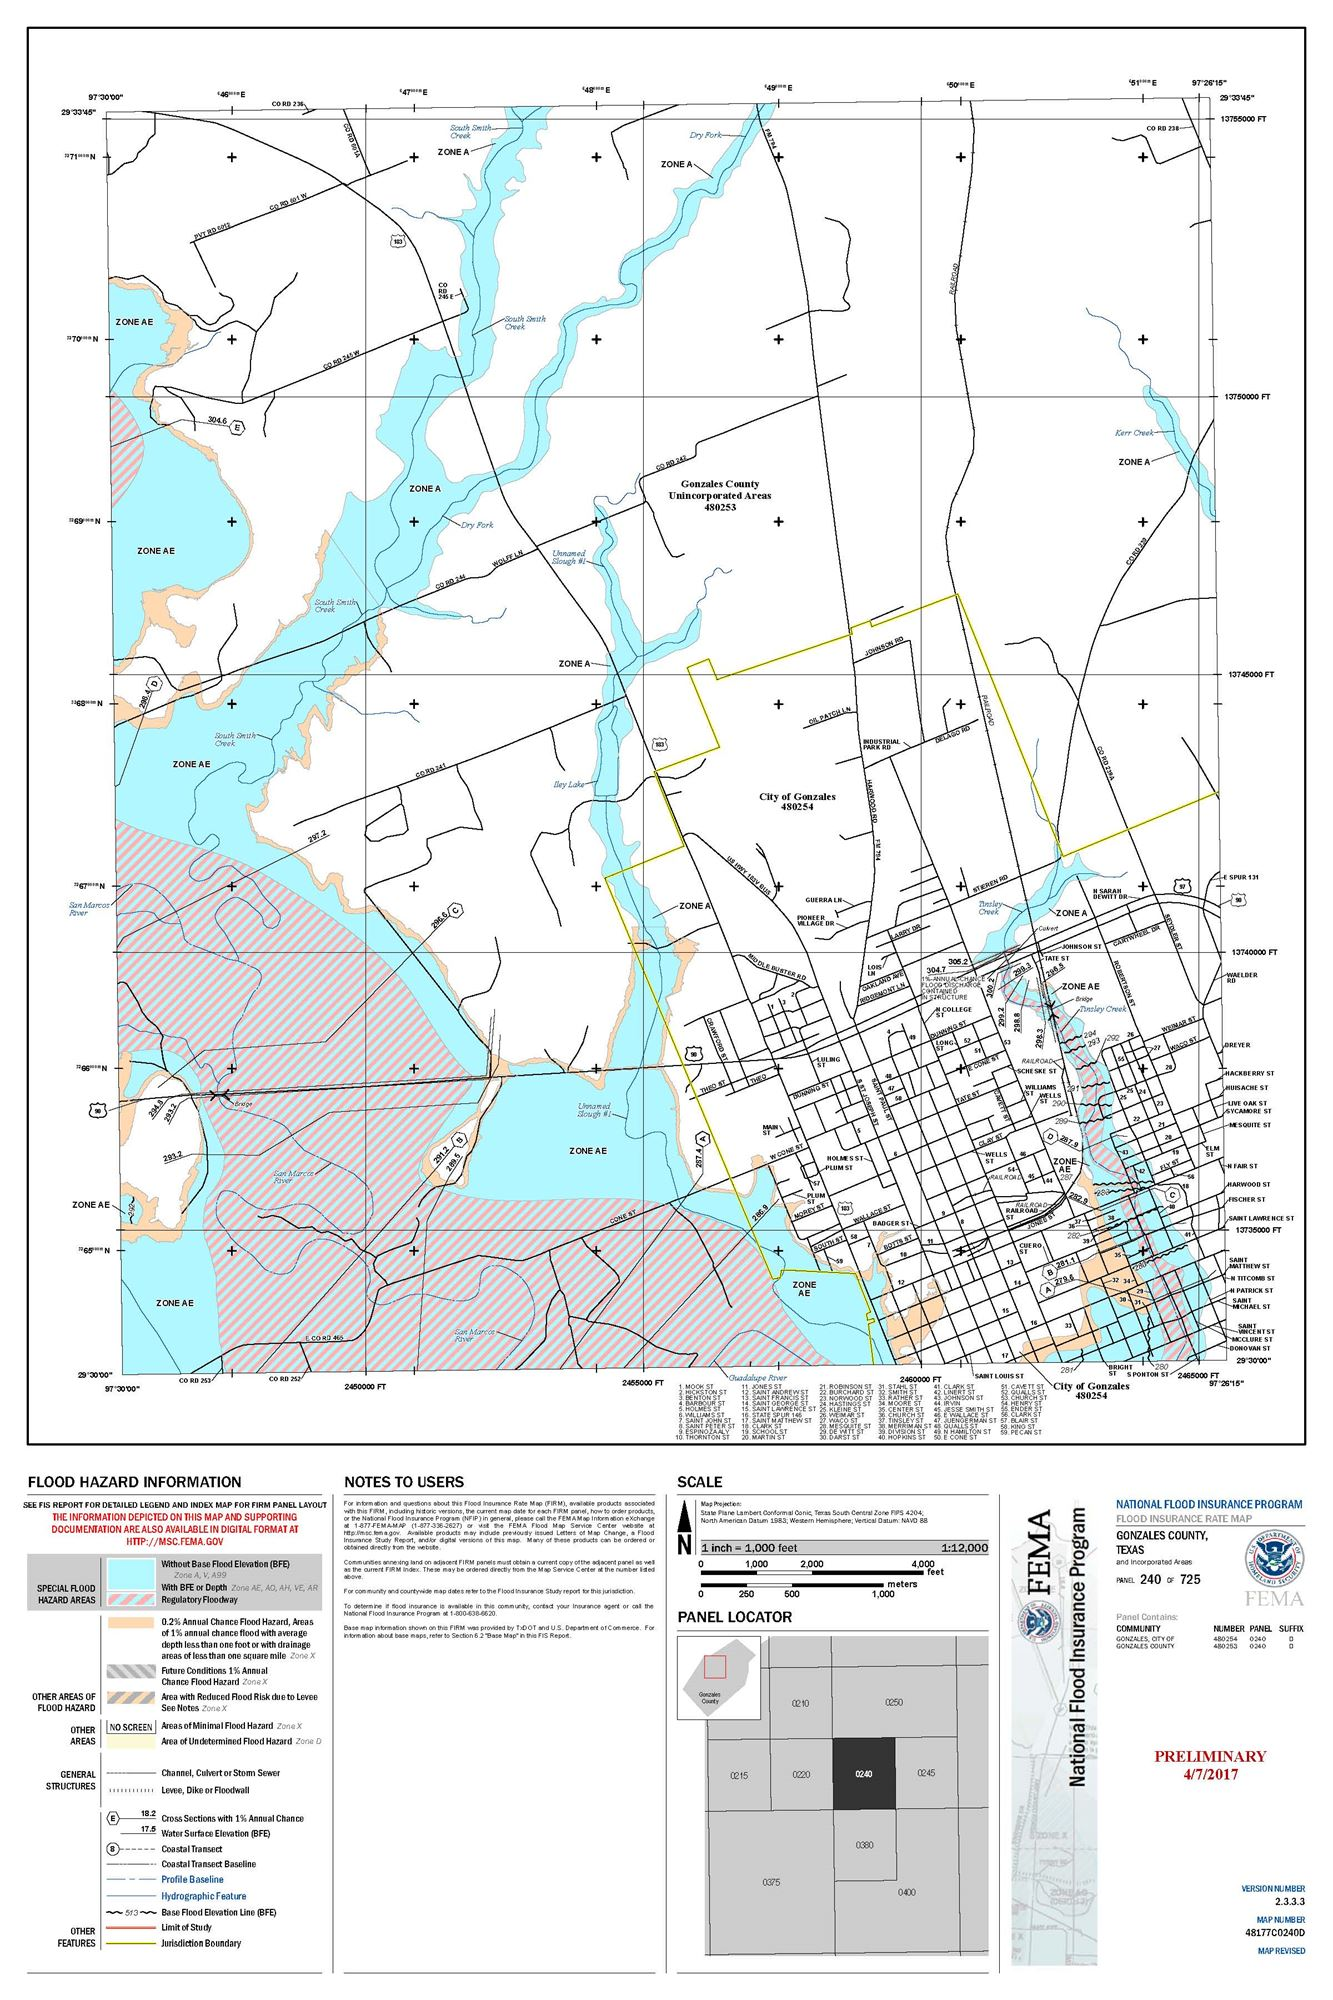 Preliminary Flood Map - Flood line map